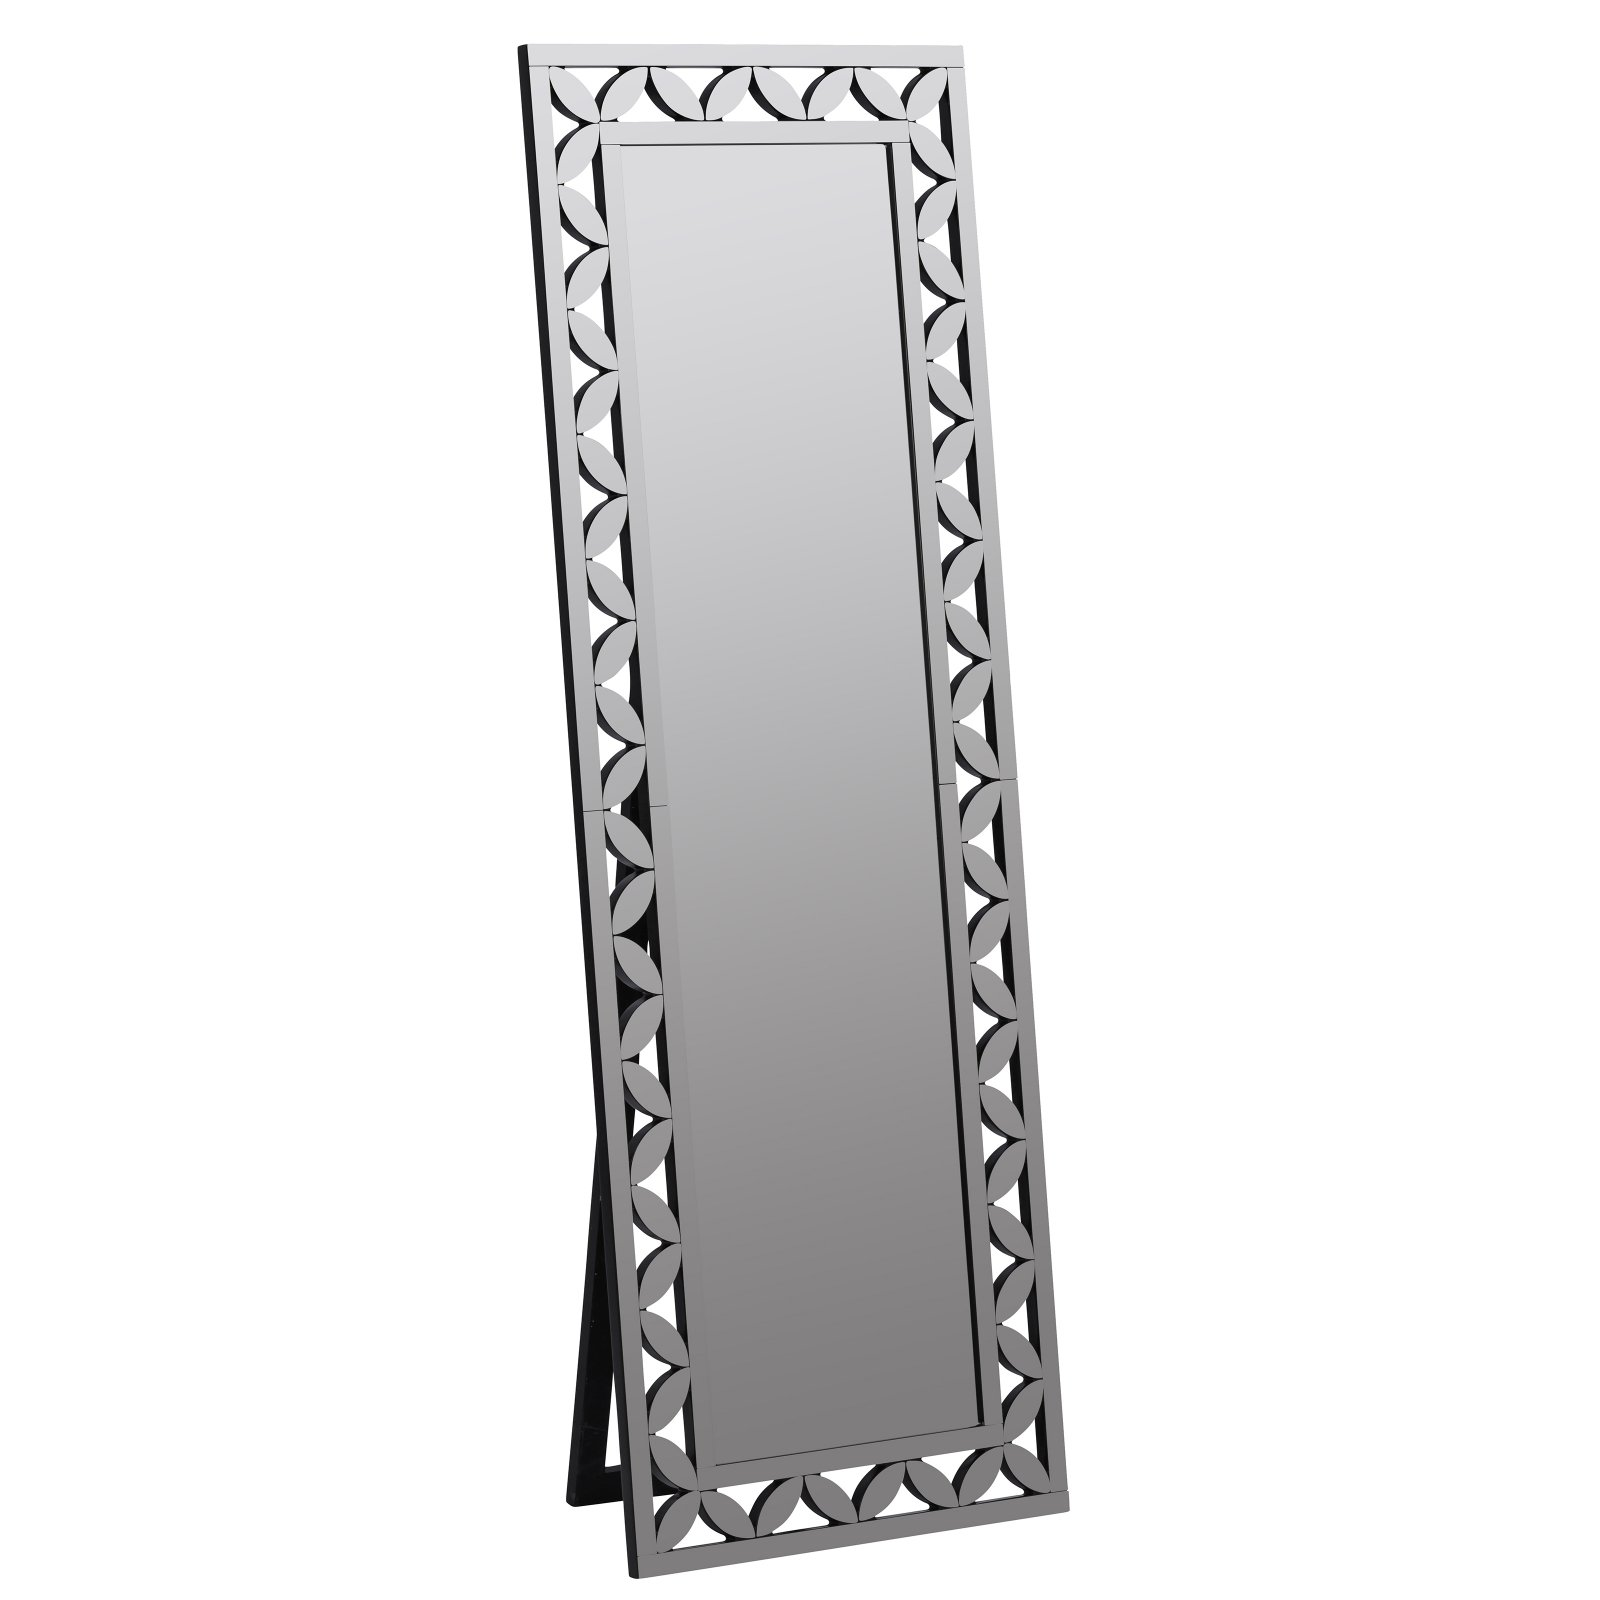 Cooper Classics Warrick Floor Mirror 24W x 68H in. by Cooper Classics